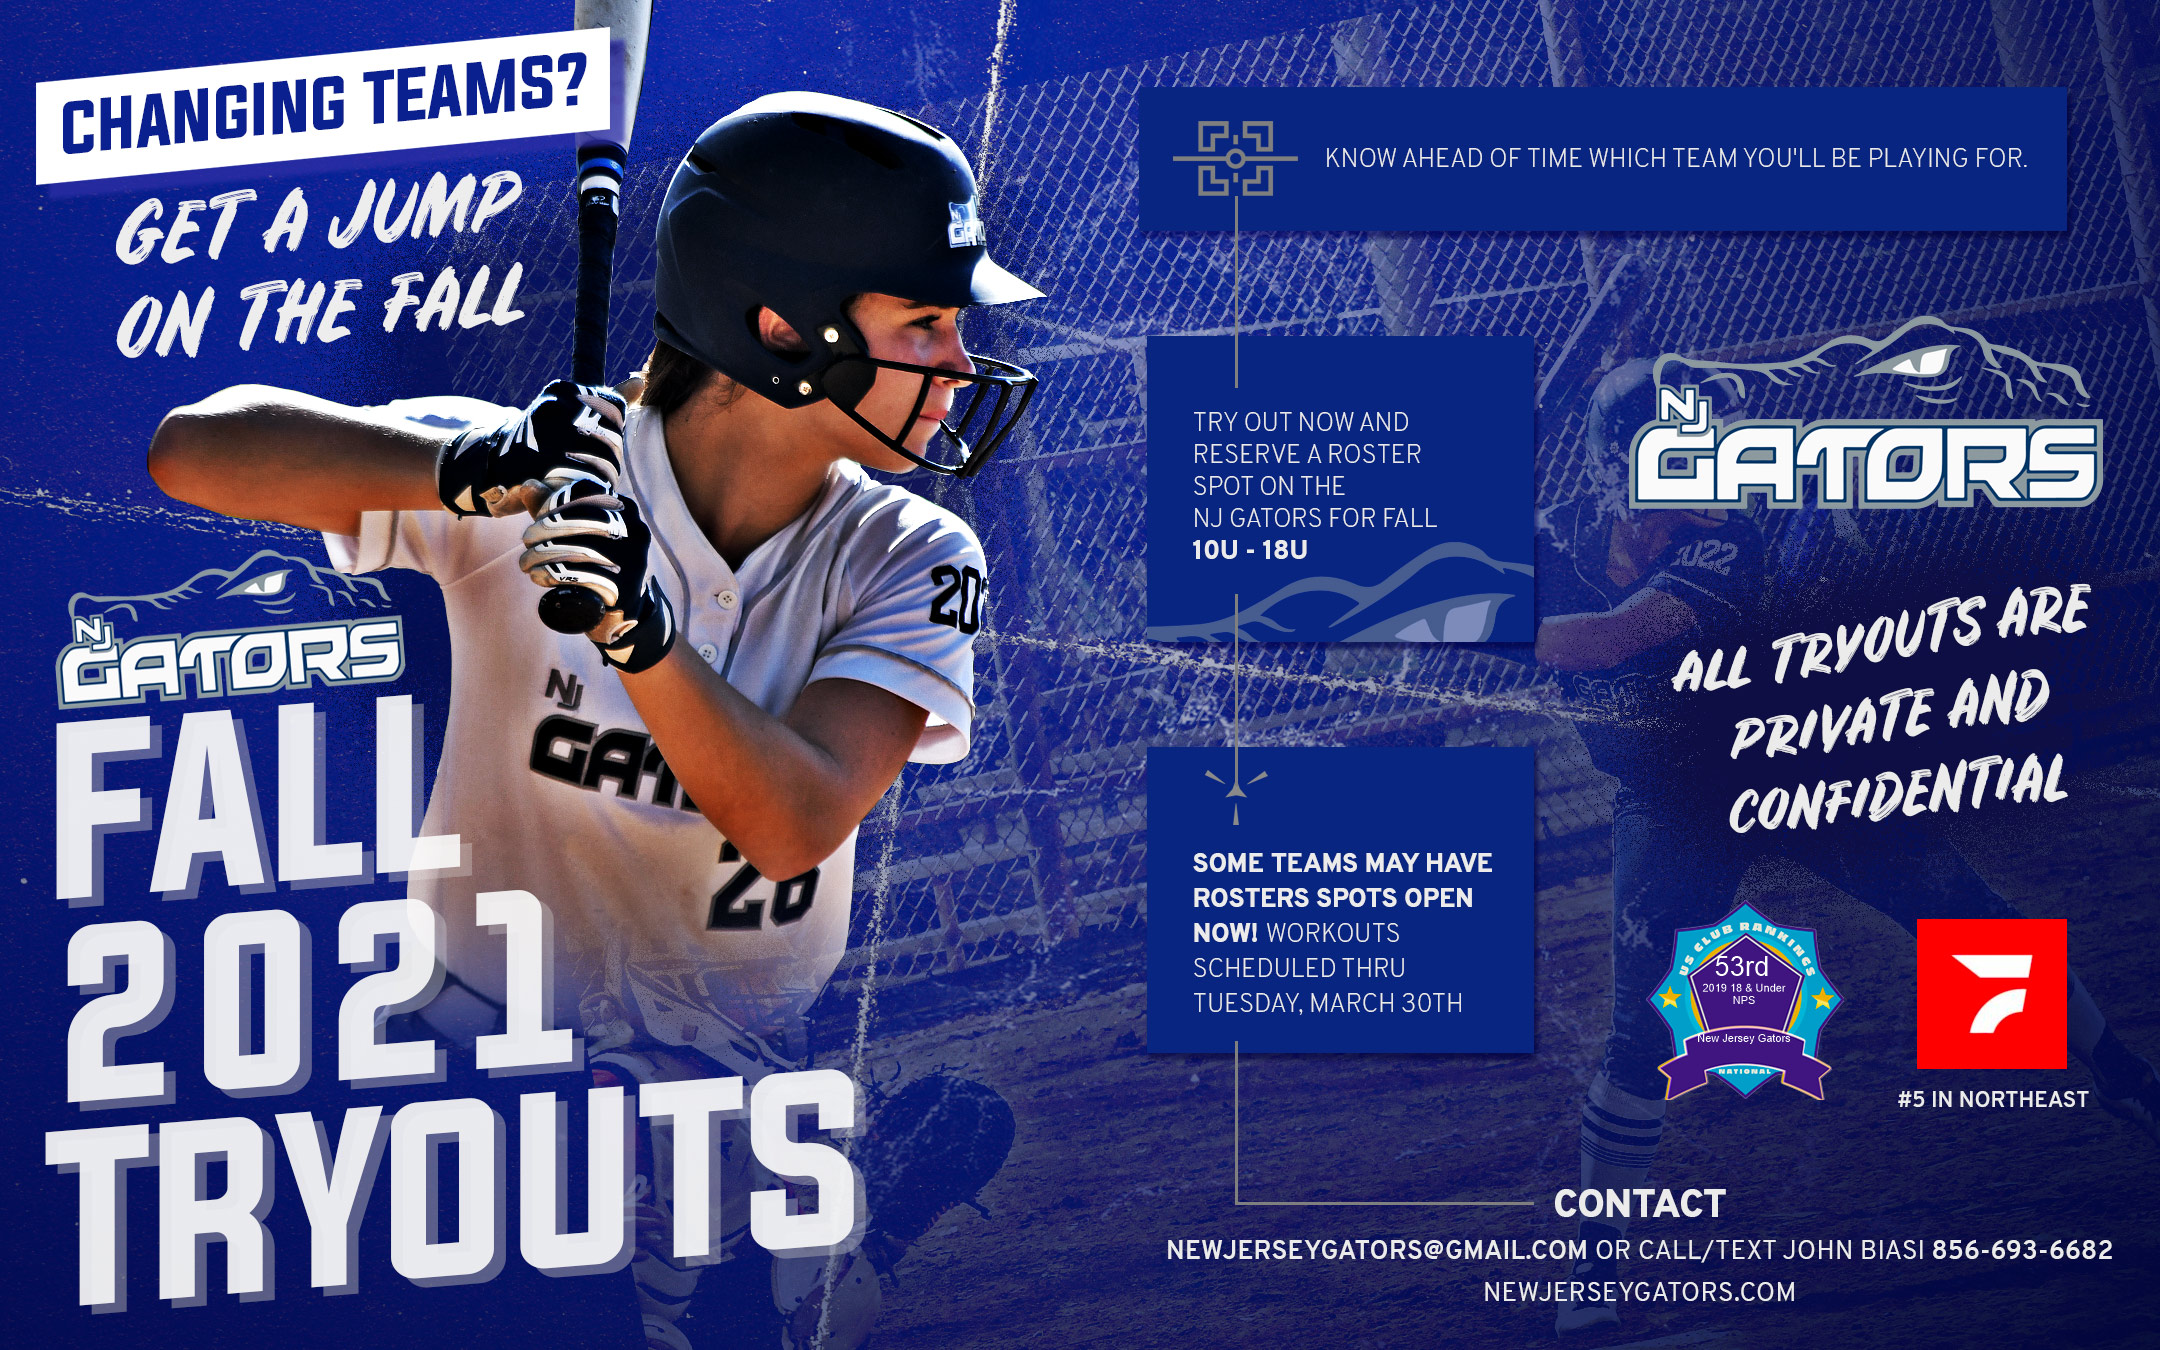 Fall-2021-tryouts